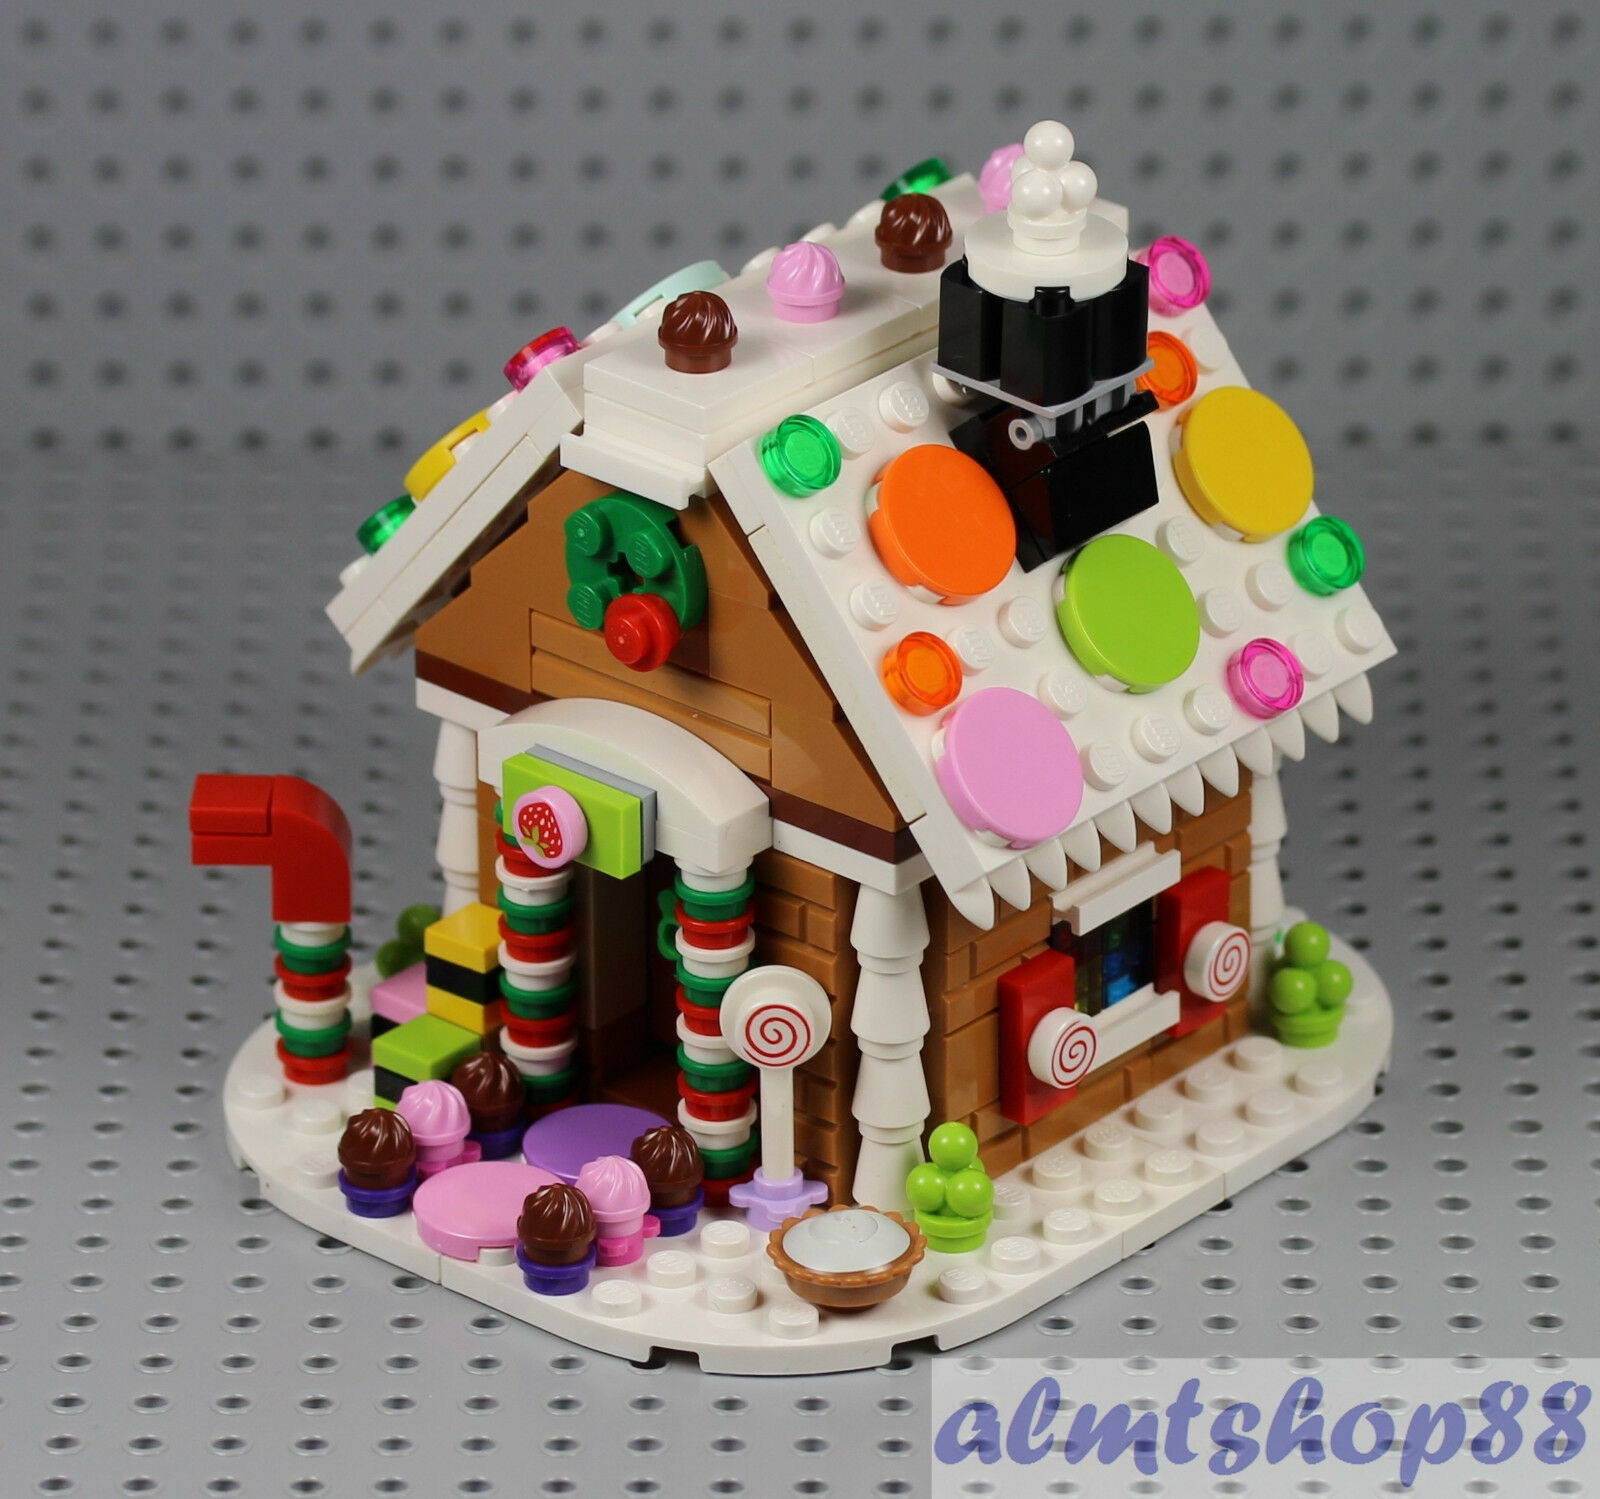 LEGO - Gingerbread House 40139 - 100% completare 2015 Exclusive  XMas Holiday Cey  costo effettivo